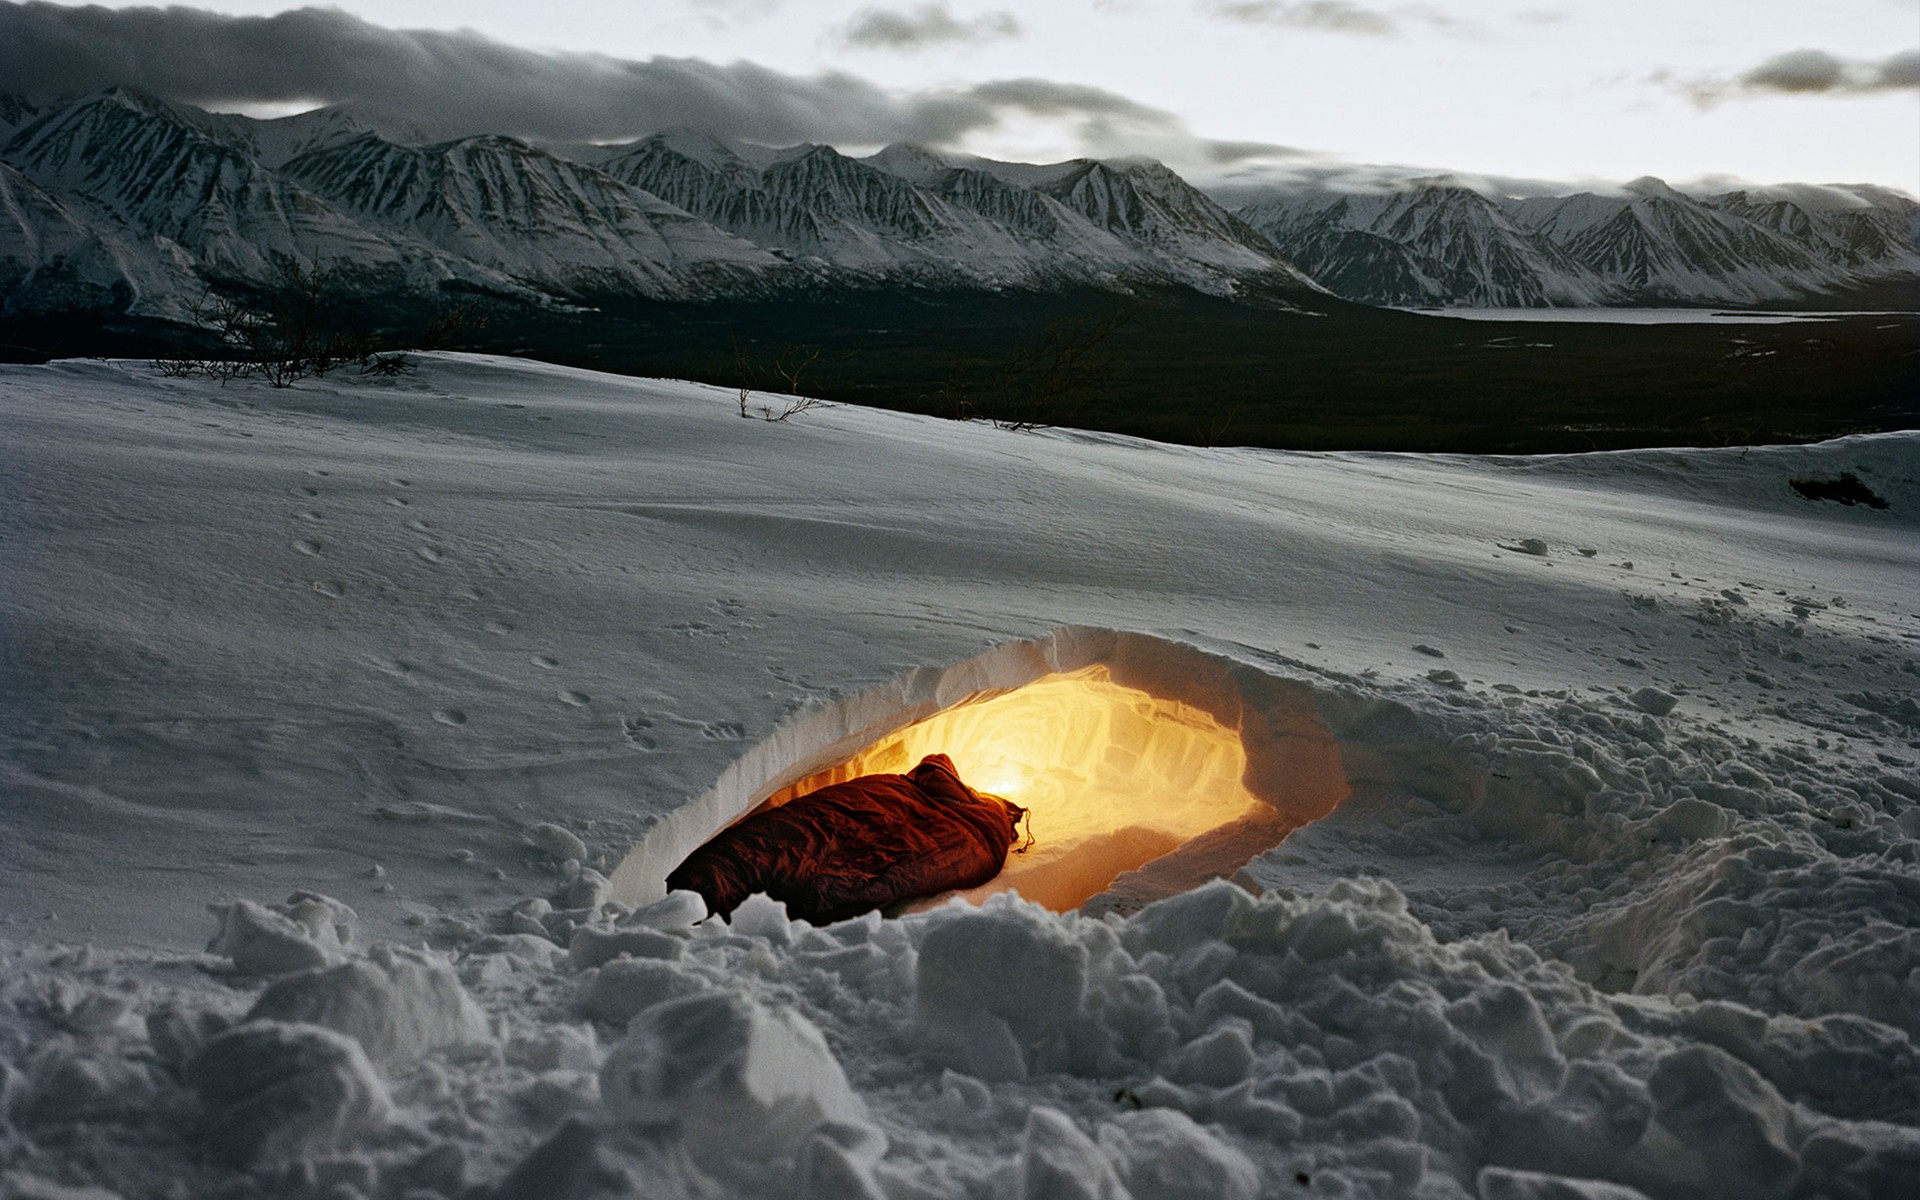 General 1920x1200 camping Canada Yukon winter survival nature